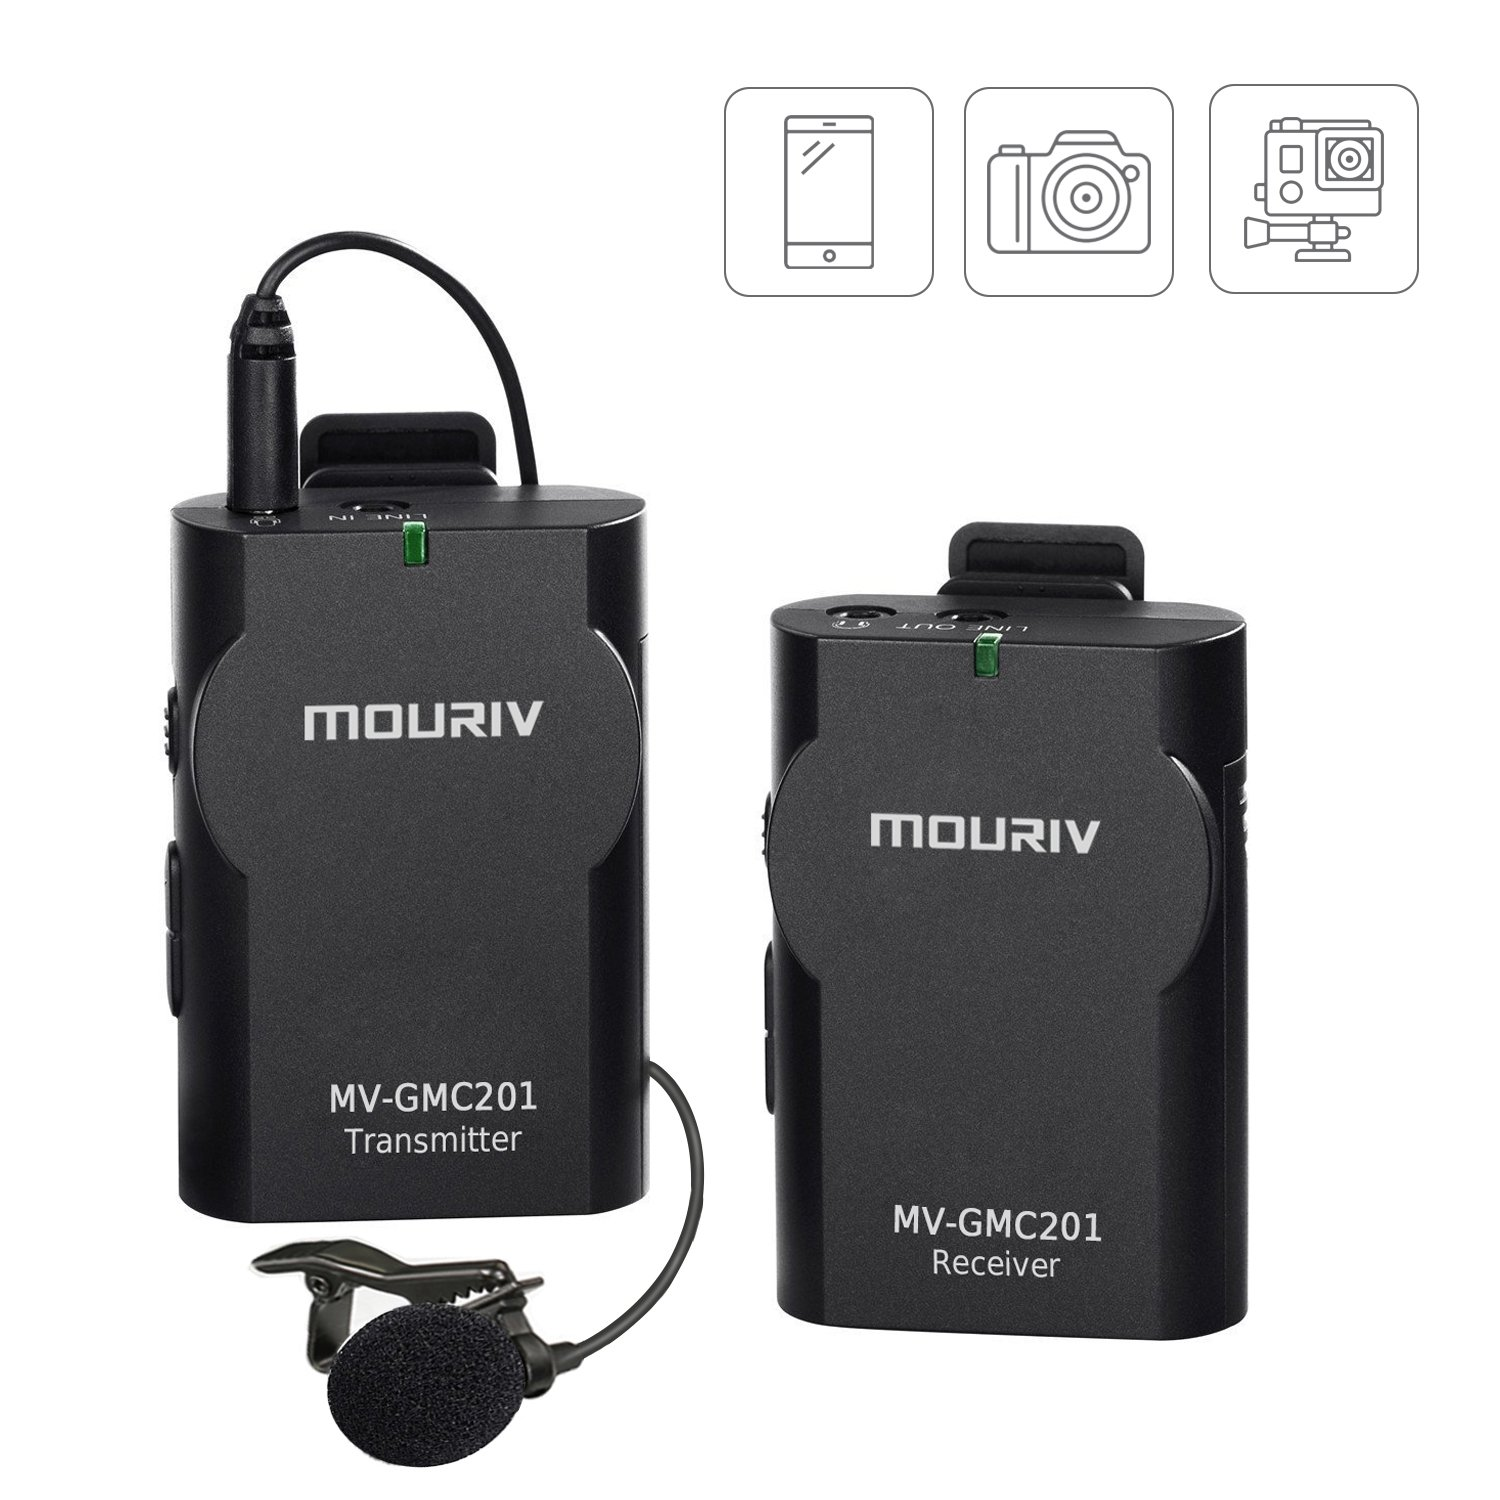 Mouriv Newest MV-GMC201 2.4G Universal Lavalier Wireless Microphone System Lapel Mic with Real-time Monitor for DSLR Camera, Camcorder, IOS iPhone, Android Smartphone Phone, Tablet, Gopro 3,3+, 4